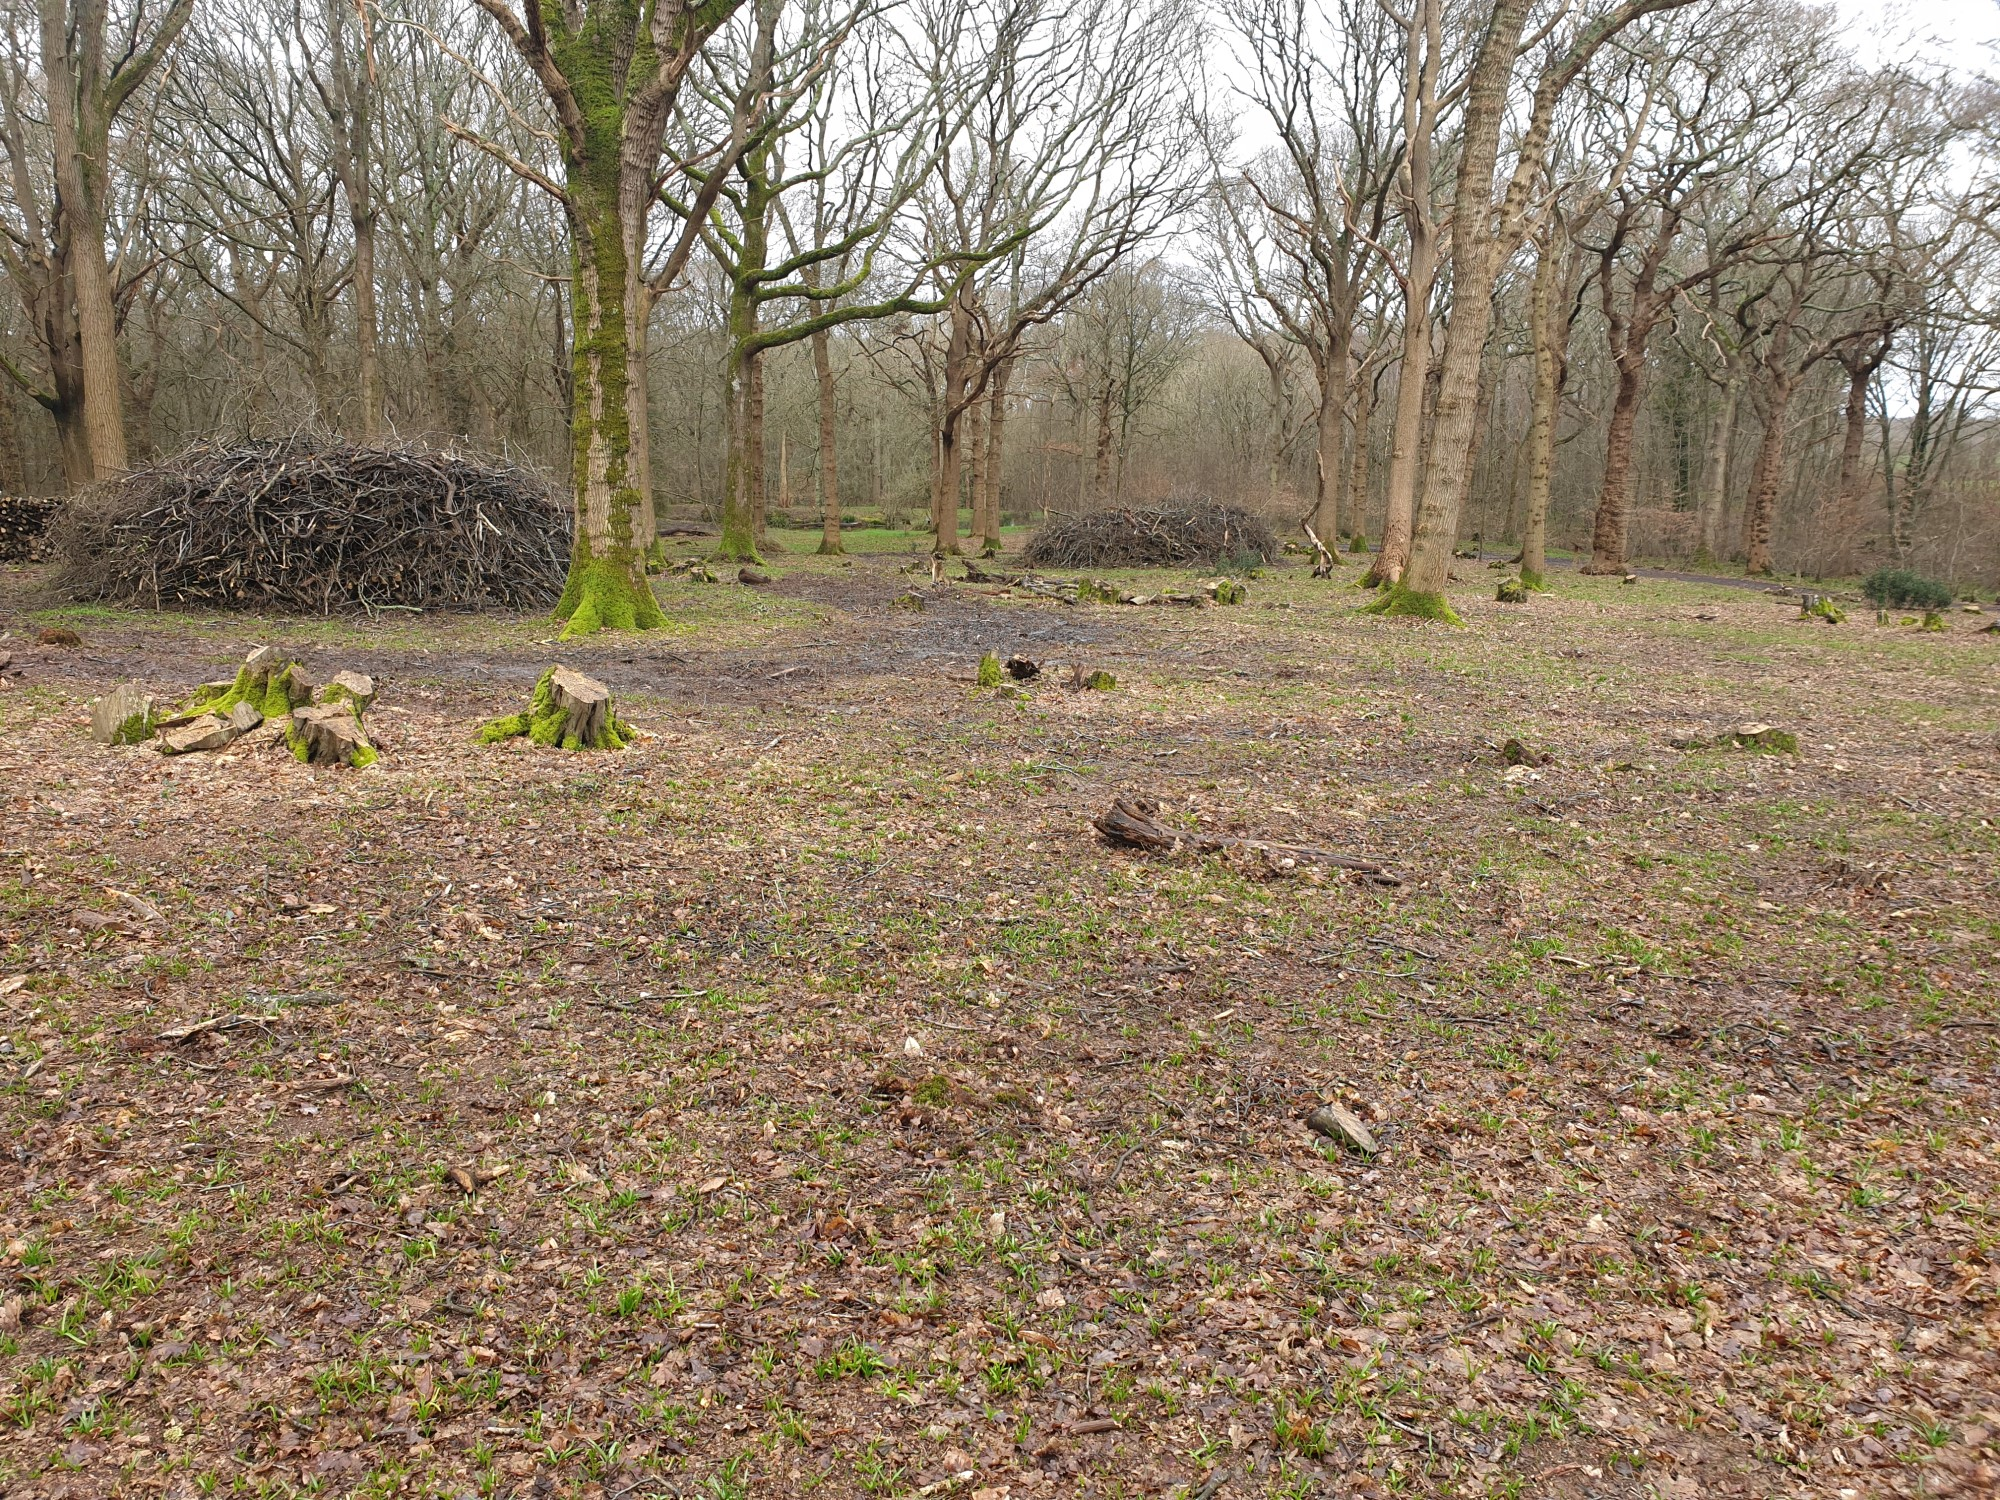 Wildlife mounds